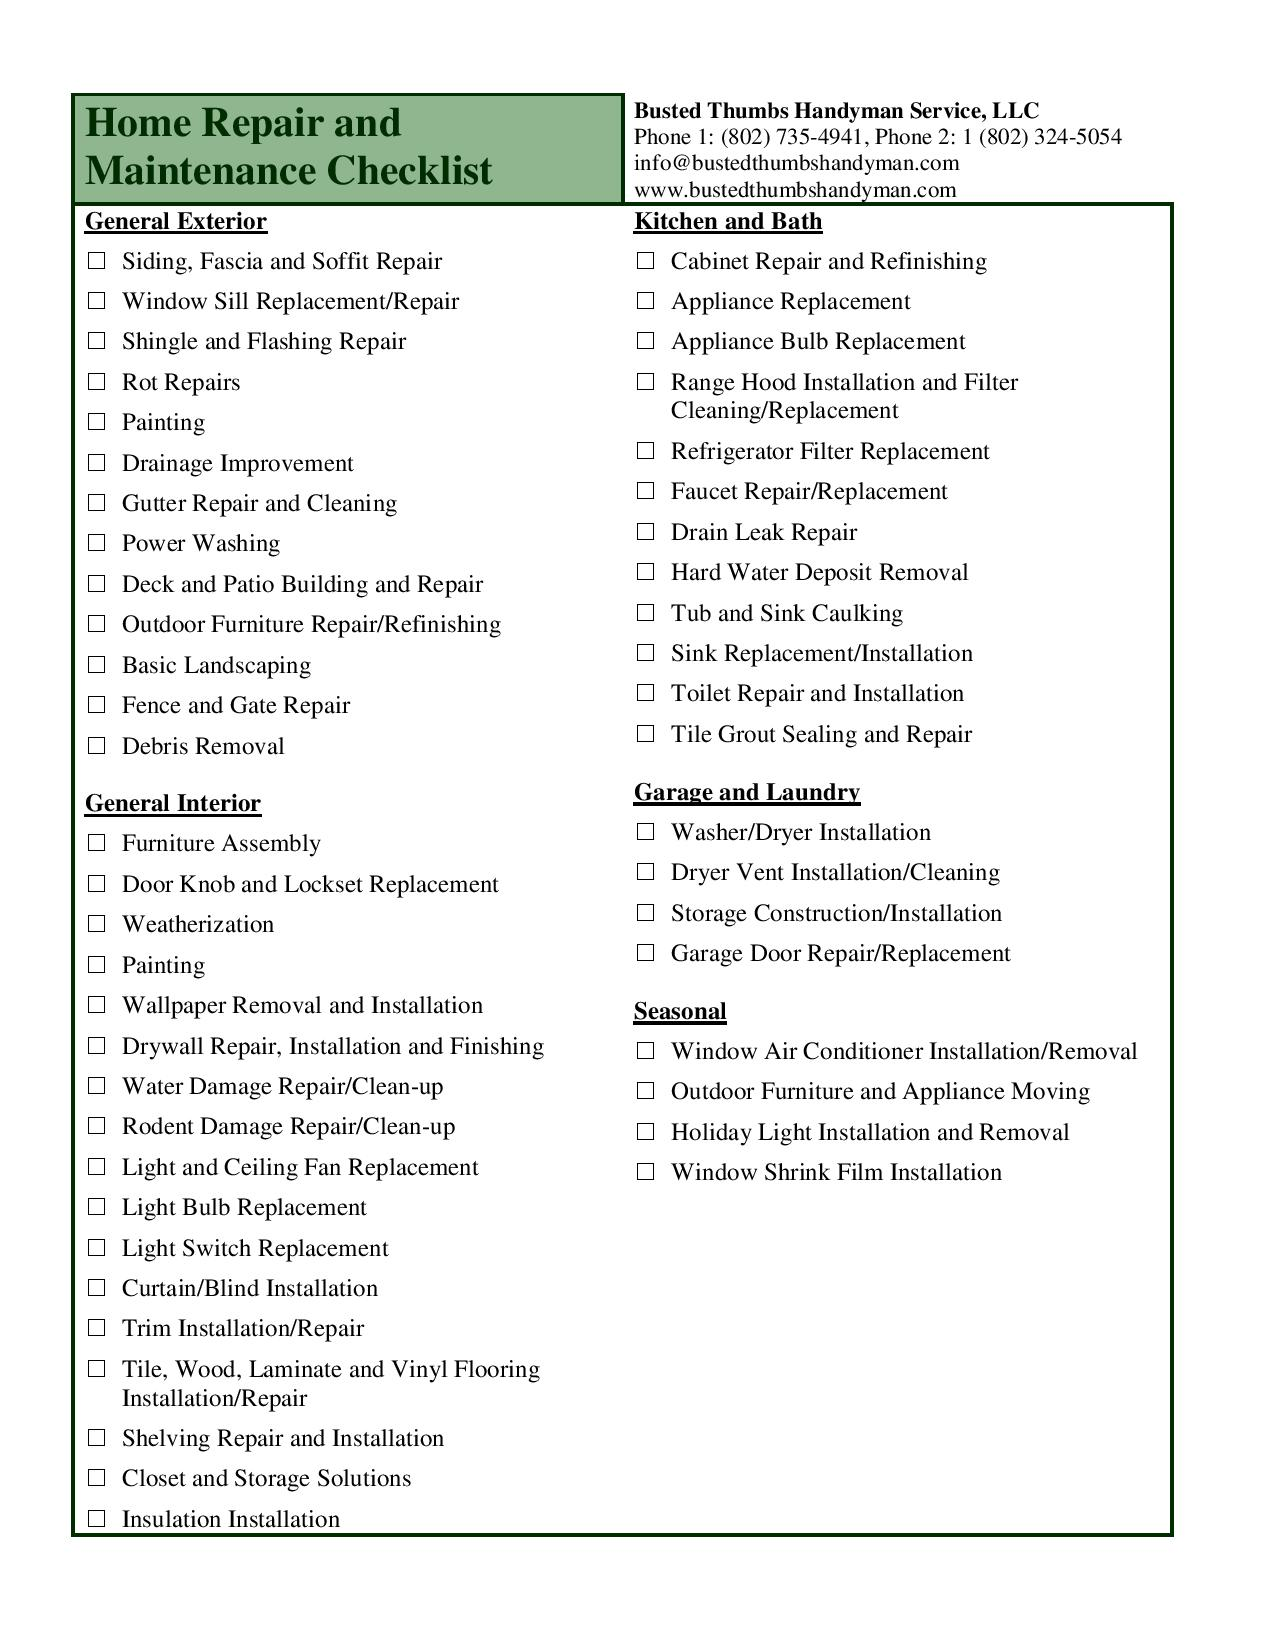 Bathroom Remodel Schedule Similiar Checklist For Renovating A House Keywords